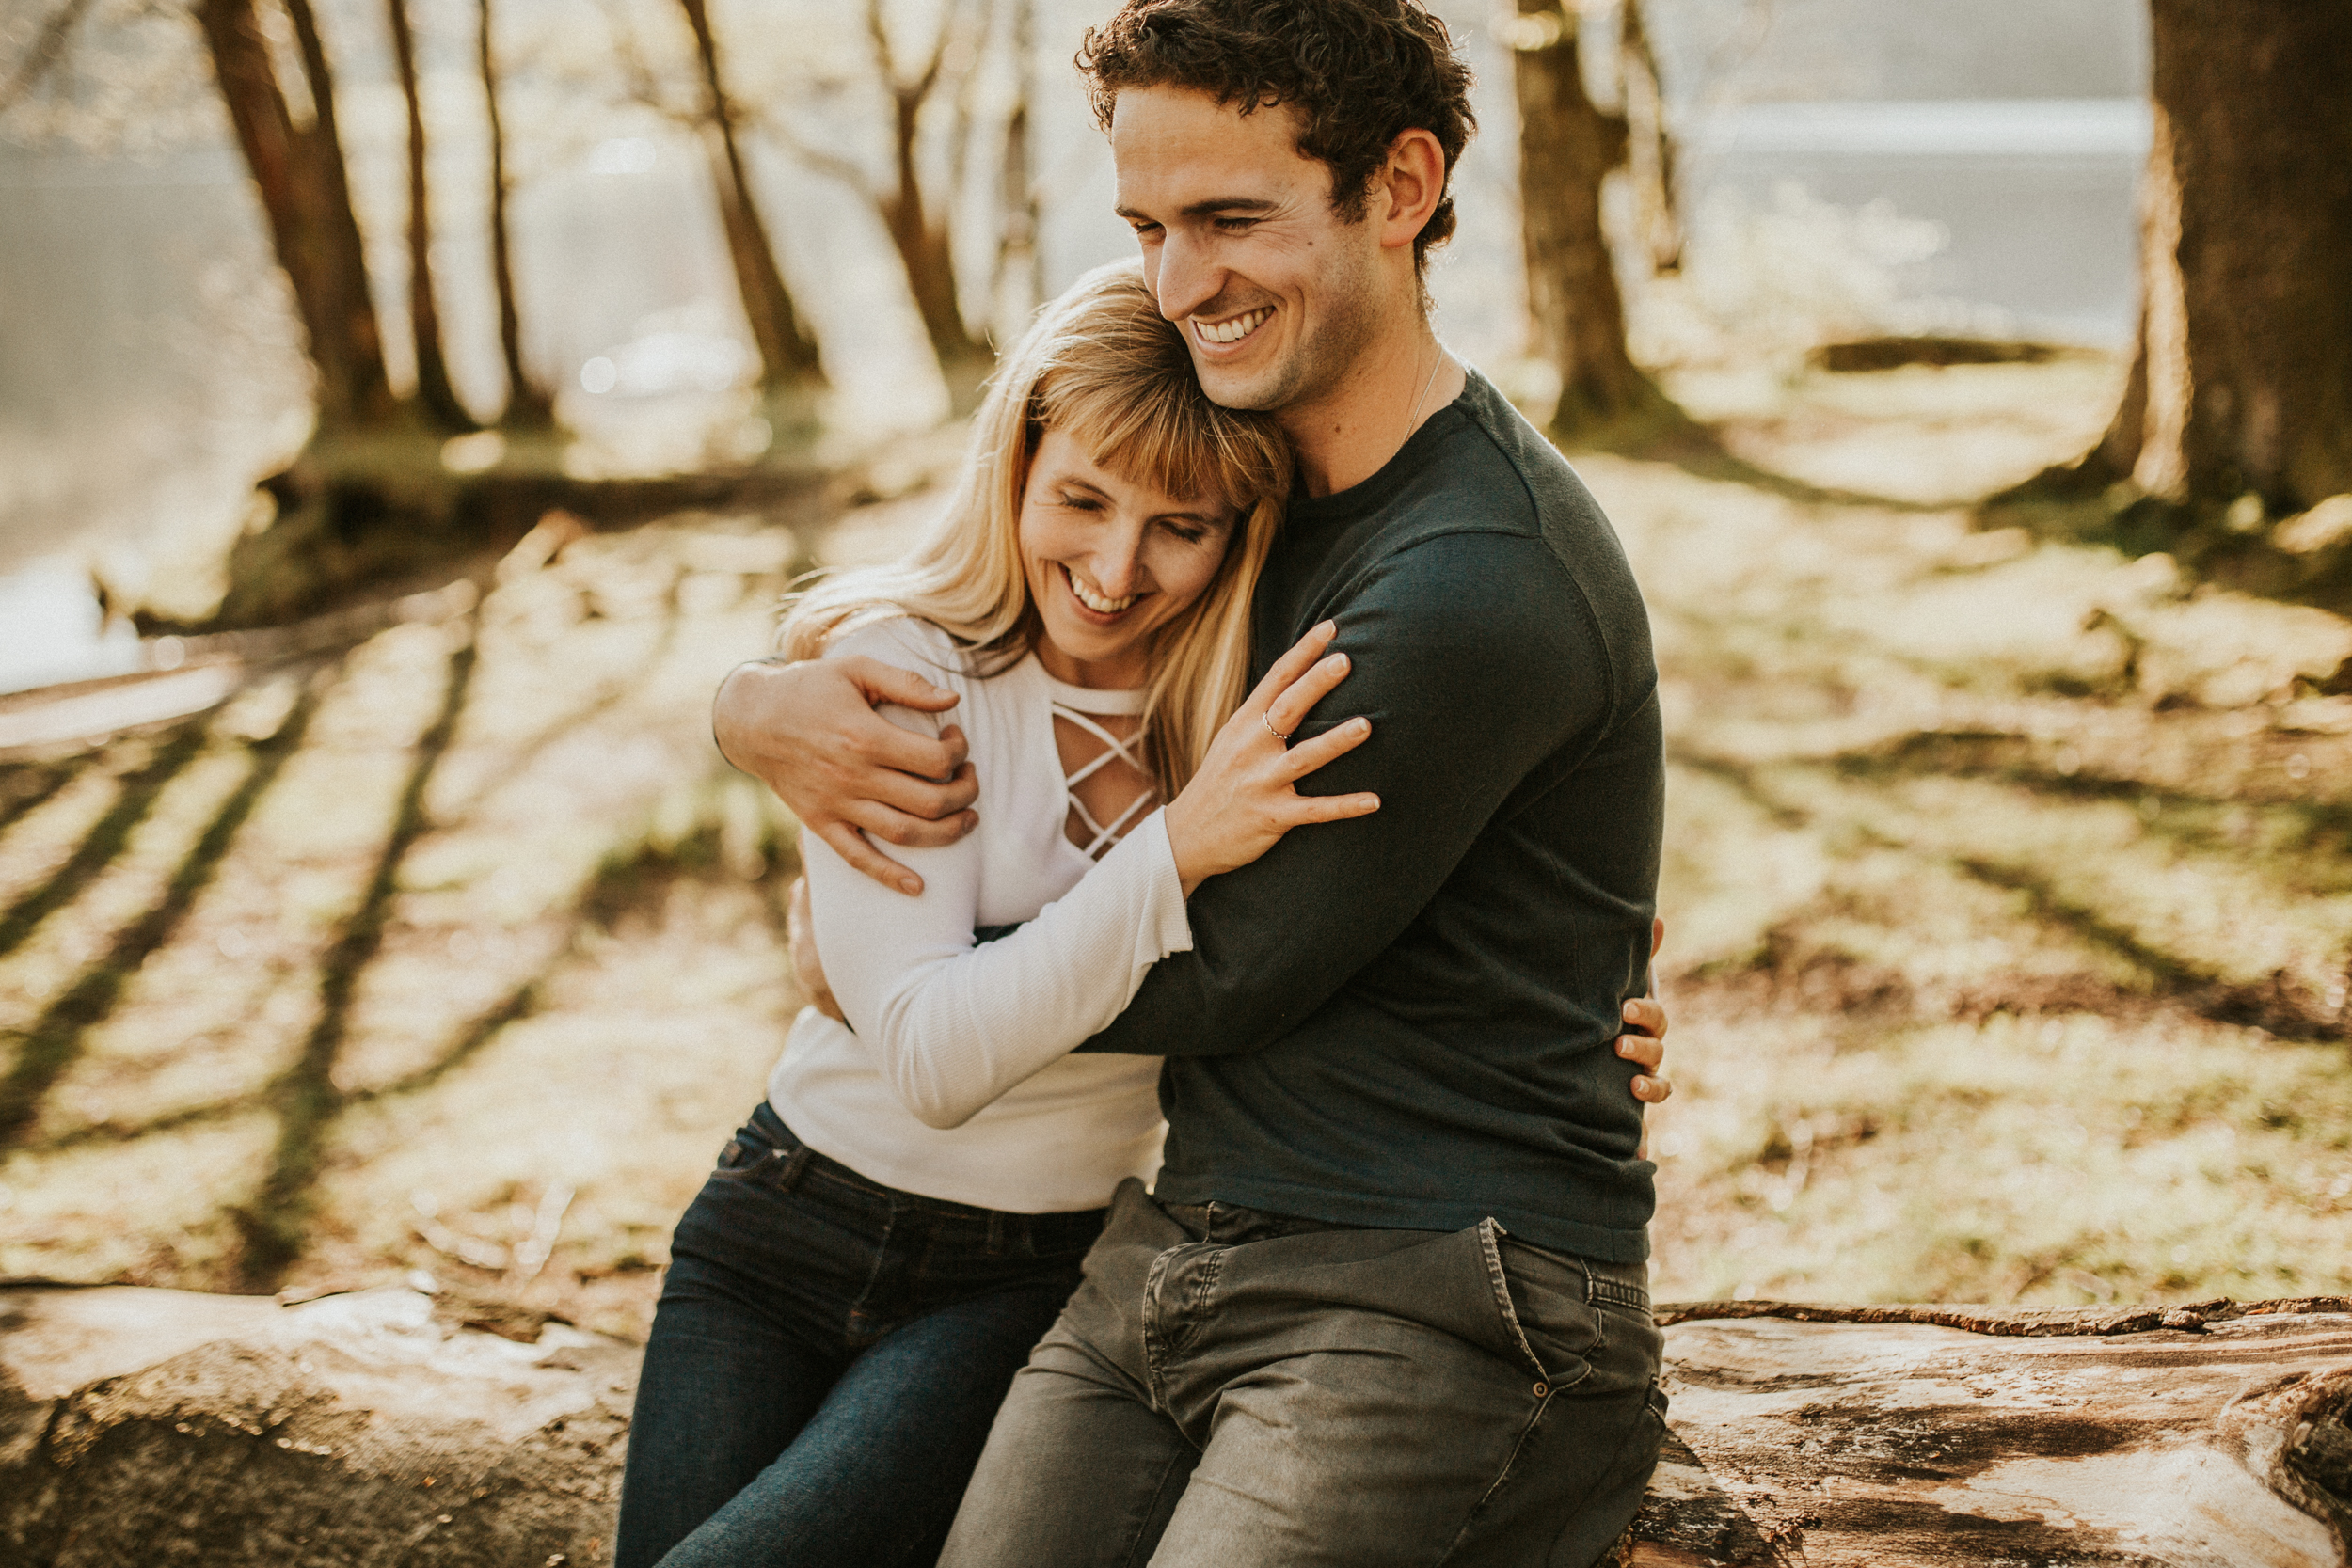 Claire-Clive-Engagement-Shoot-Lake-District-Darina-Stoda-Photography-43.jpg